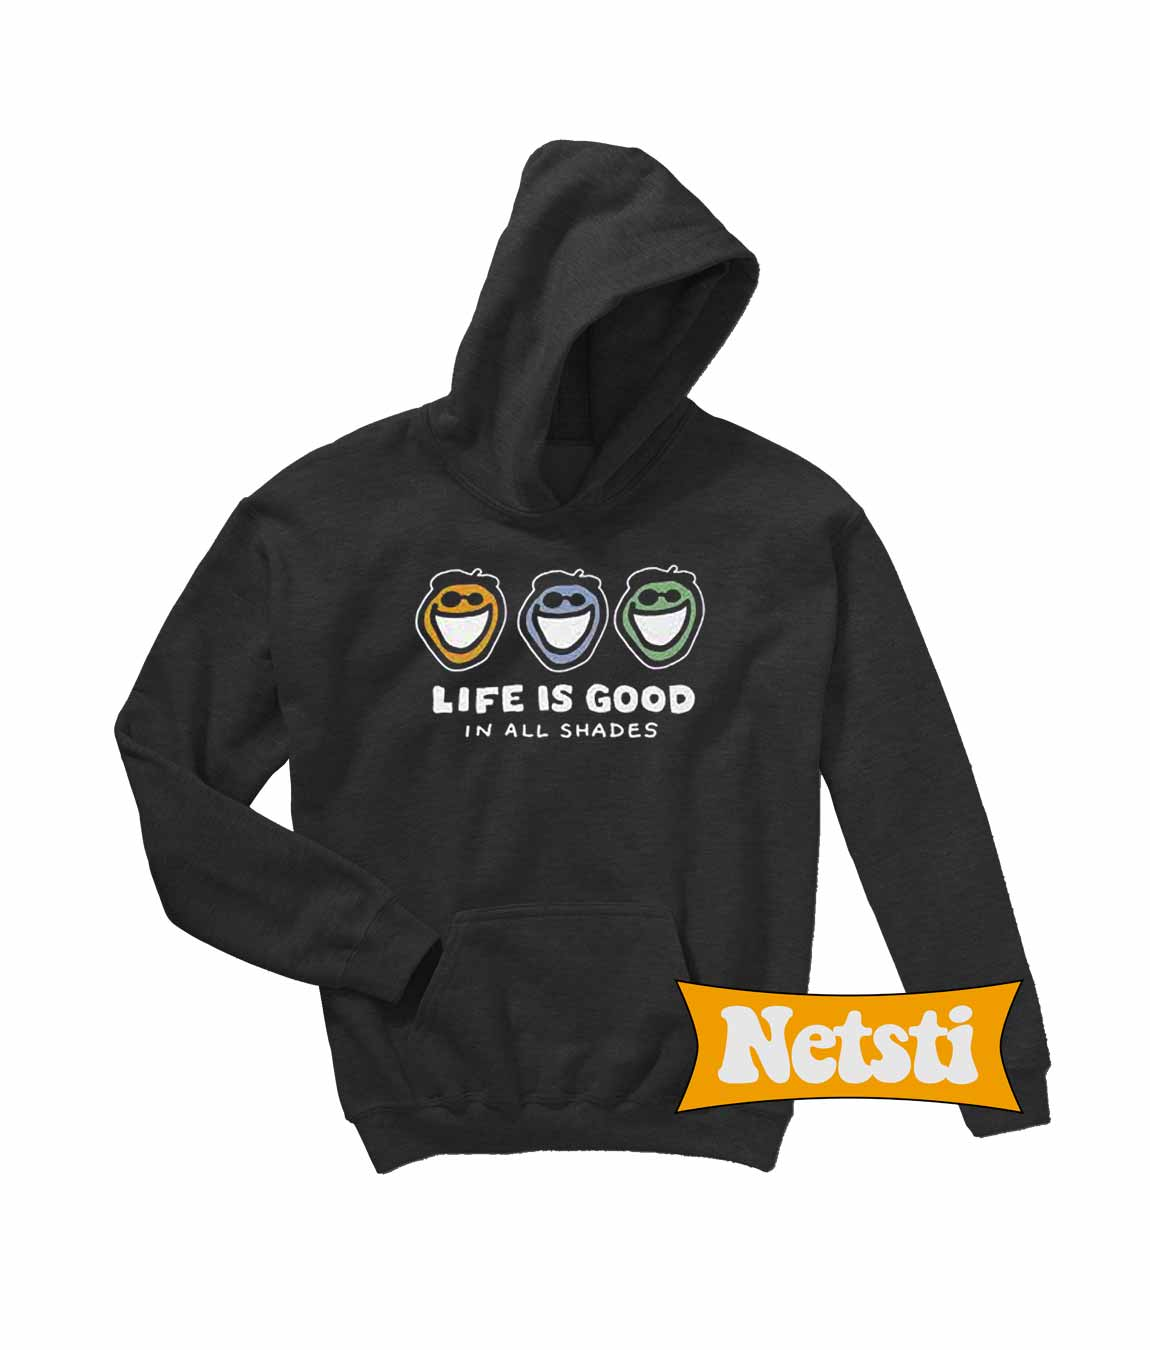 95dbb602dde Life is good in all shades Chic Fashion Hoodie Unisex This Year